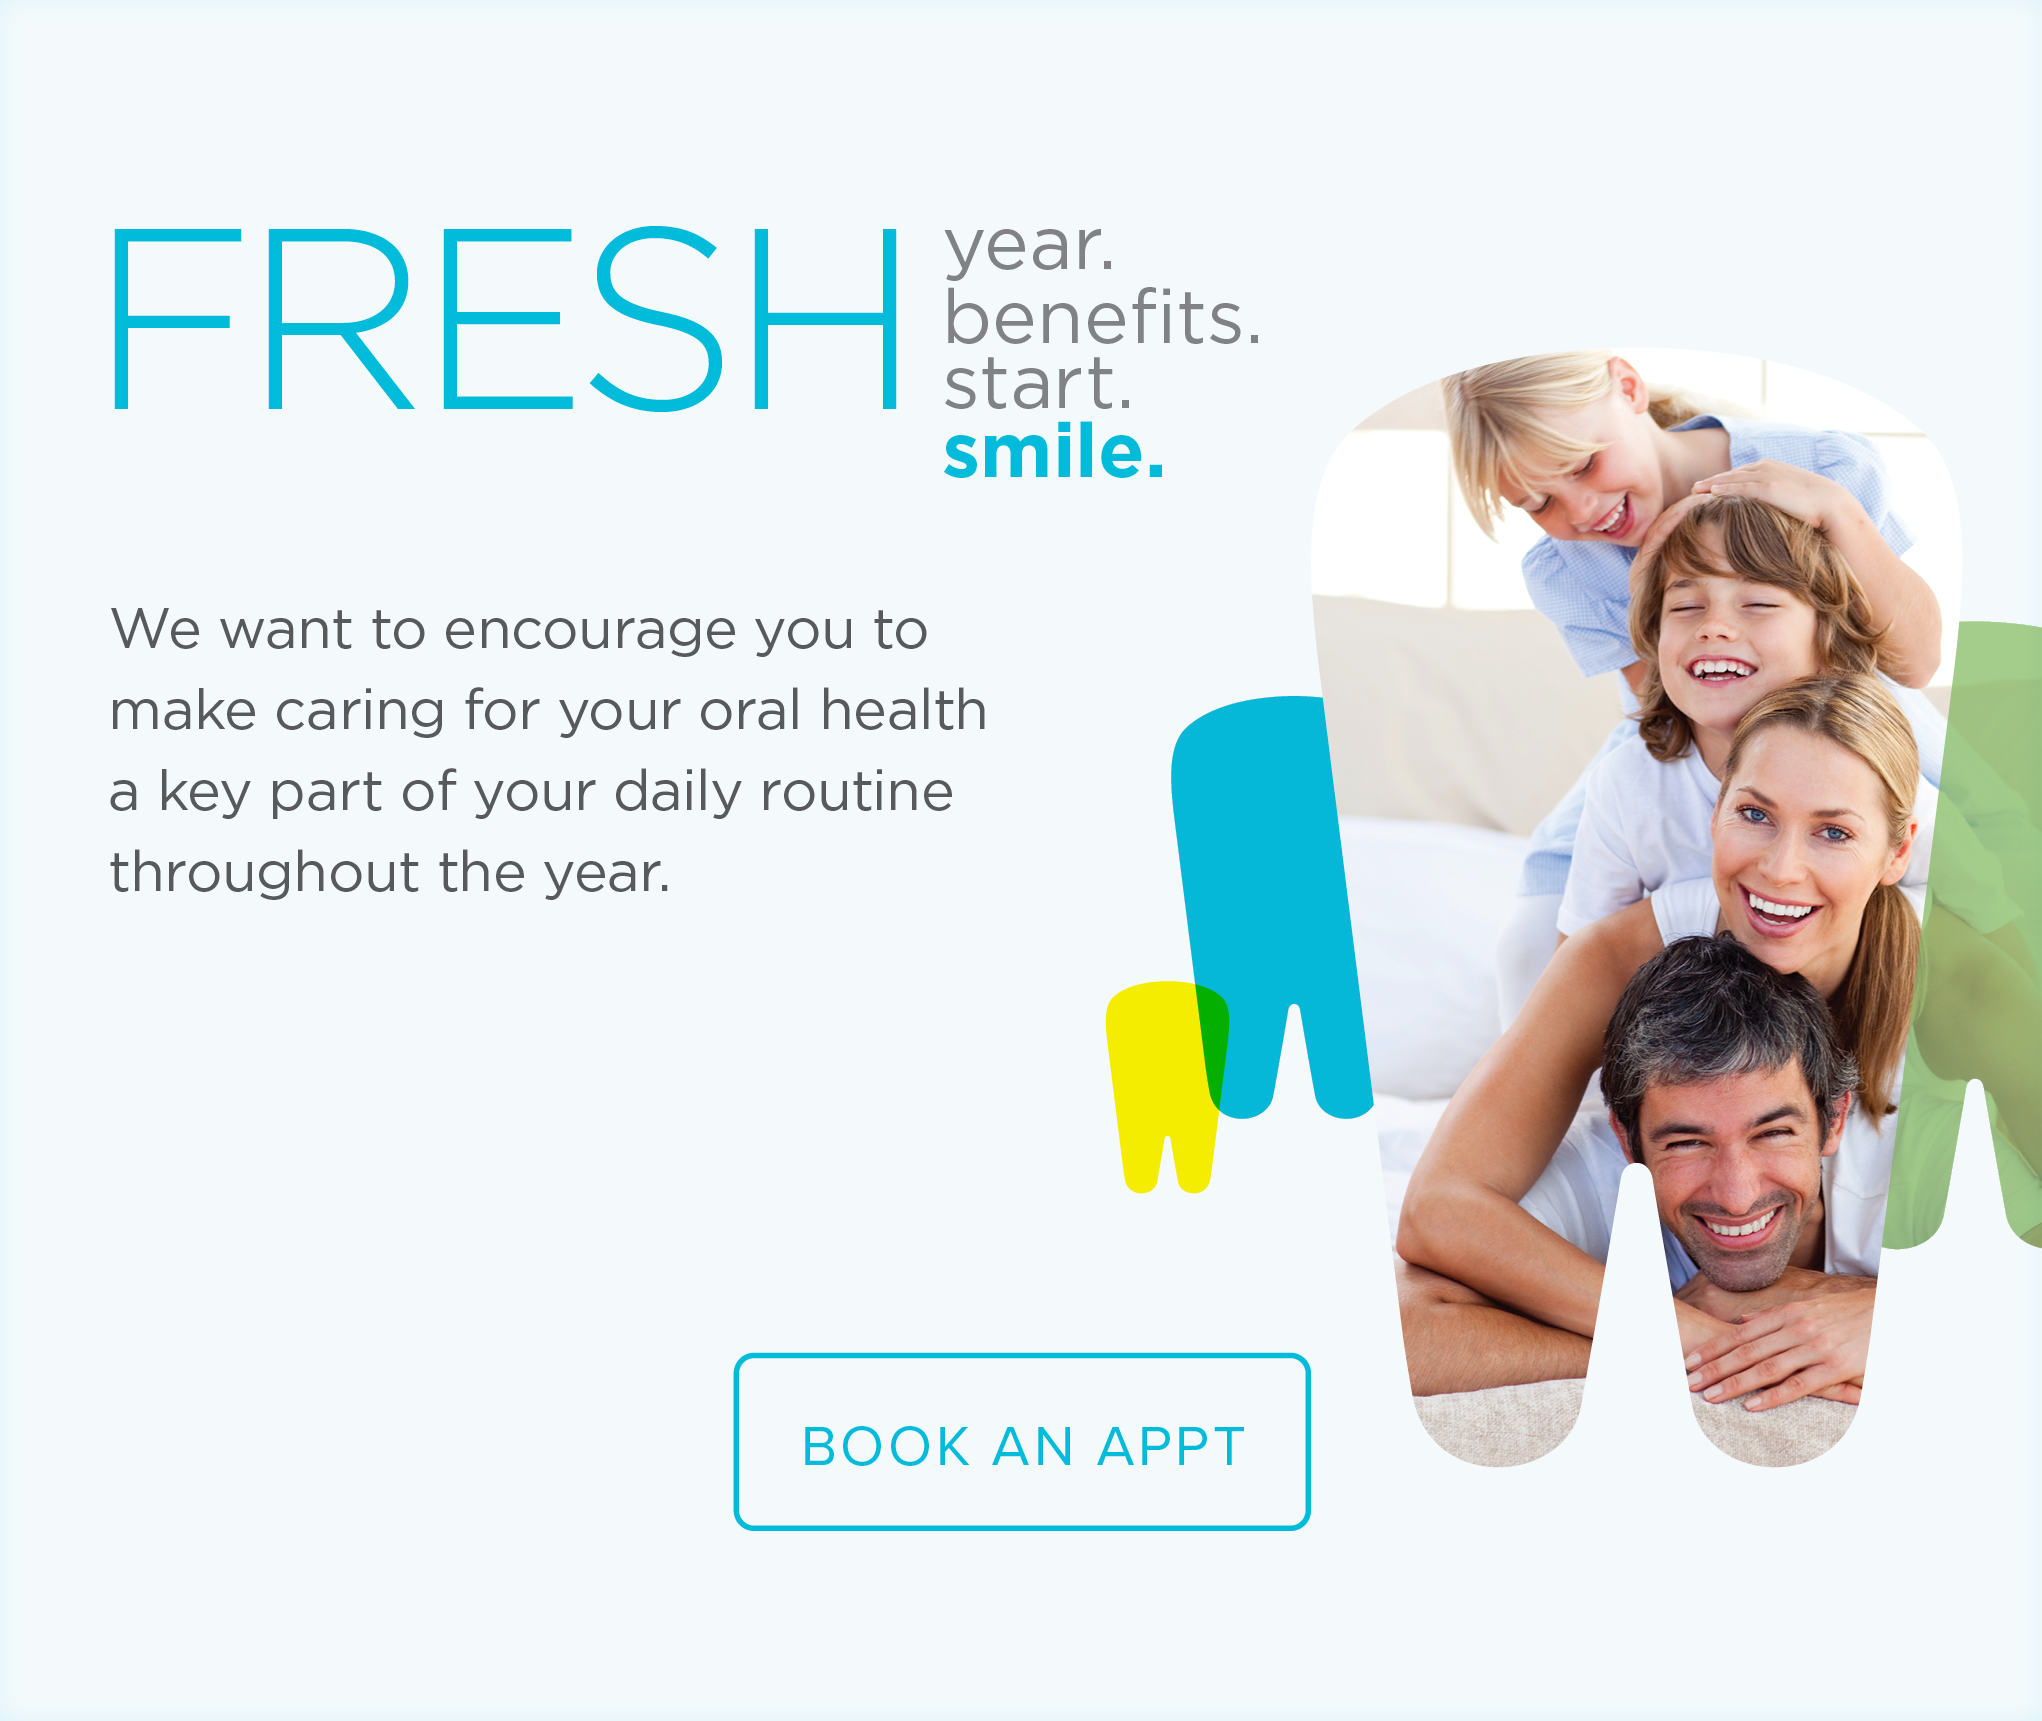 Davie Modern Dentistry - Make the Most of Your Benefits